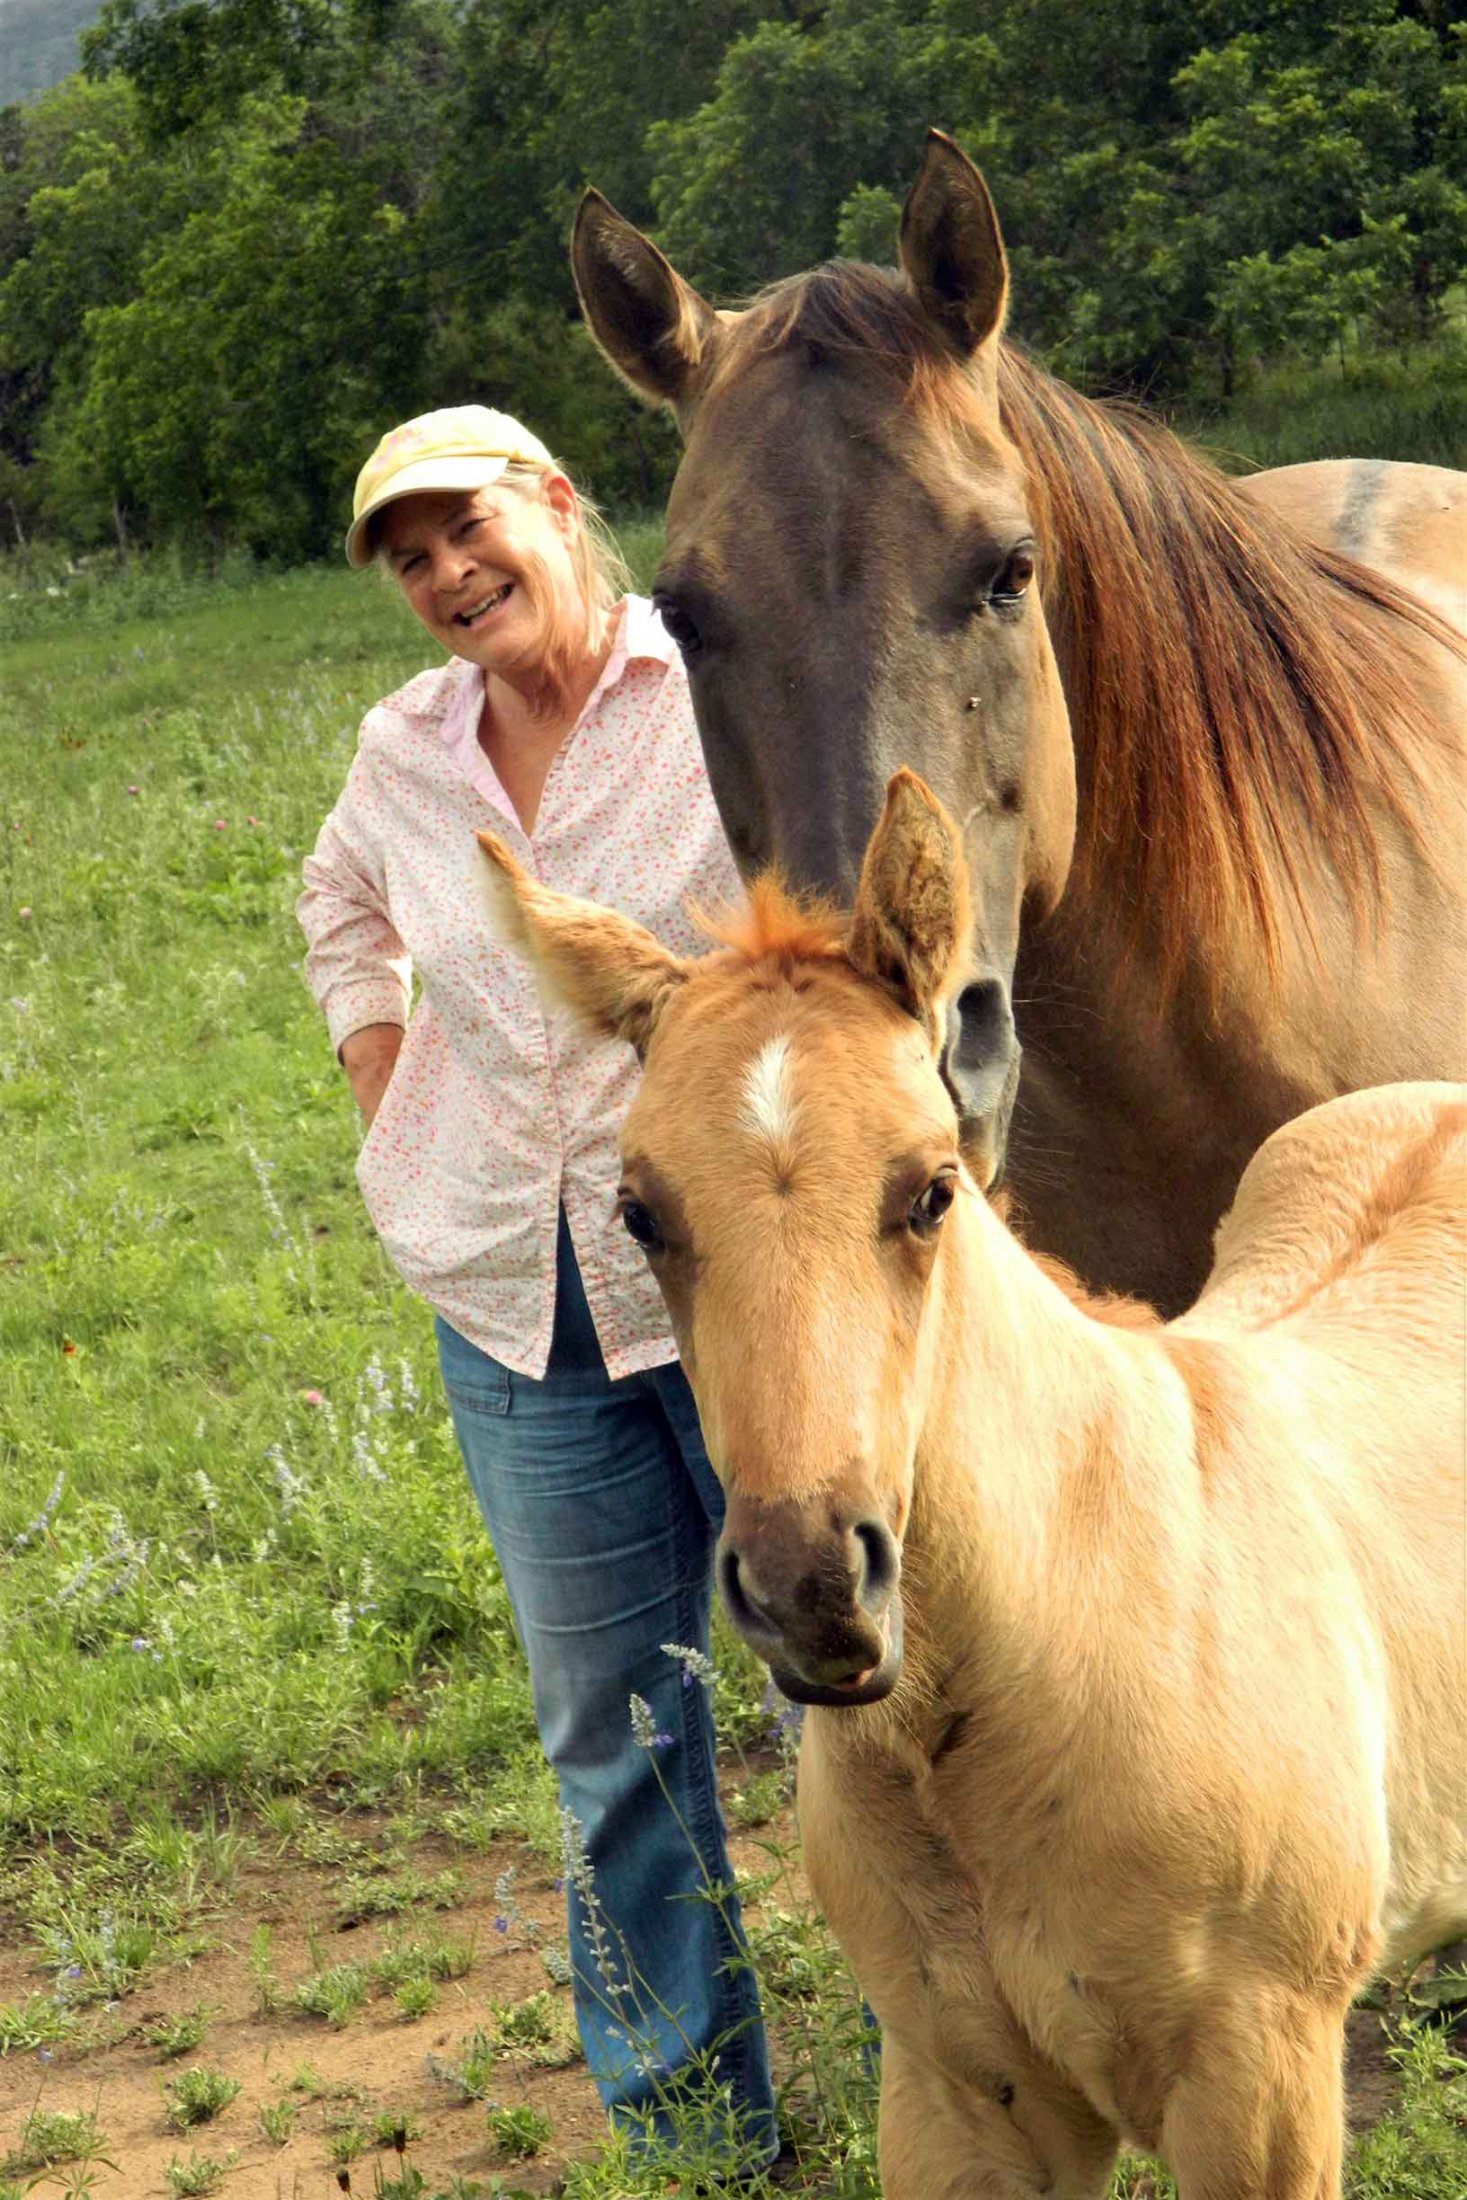 Margaret is the founder of Adventure Horses